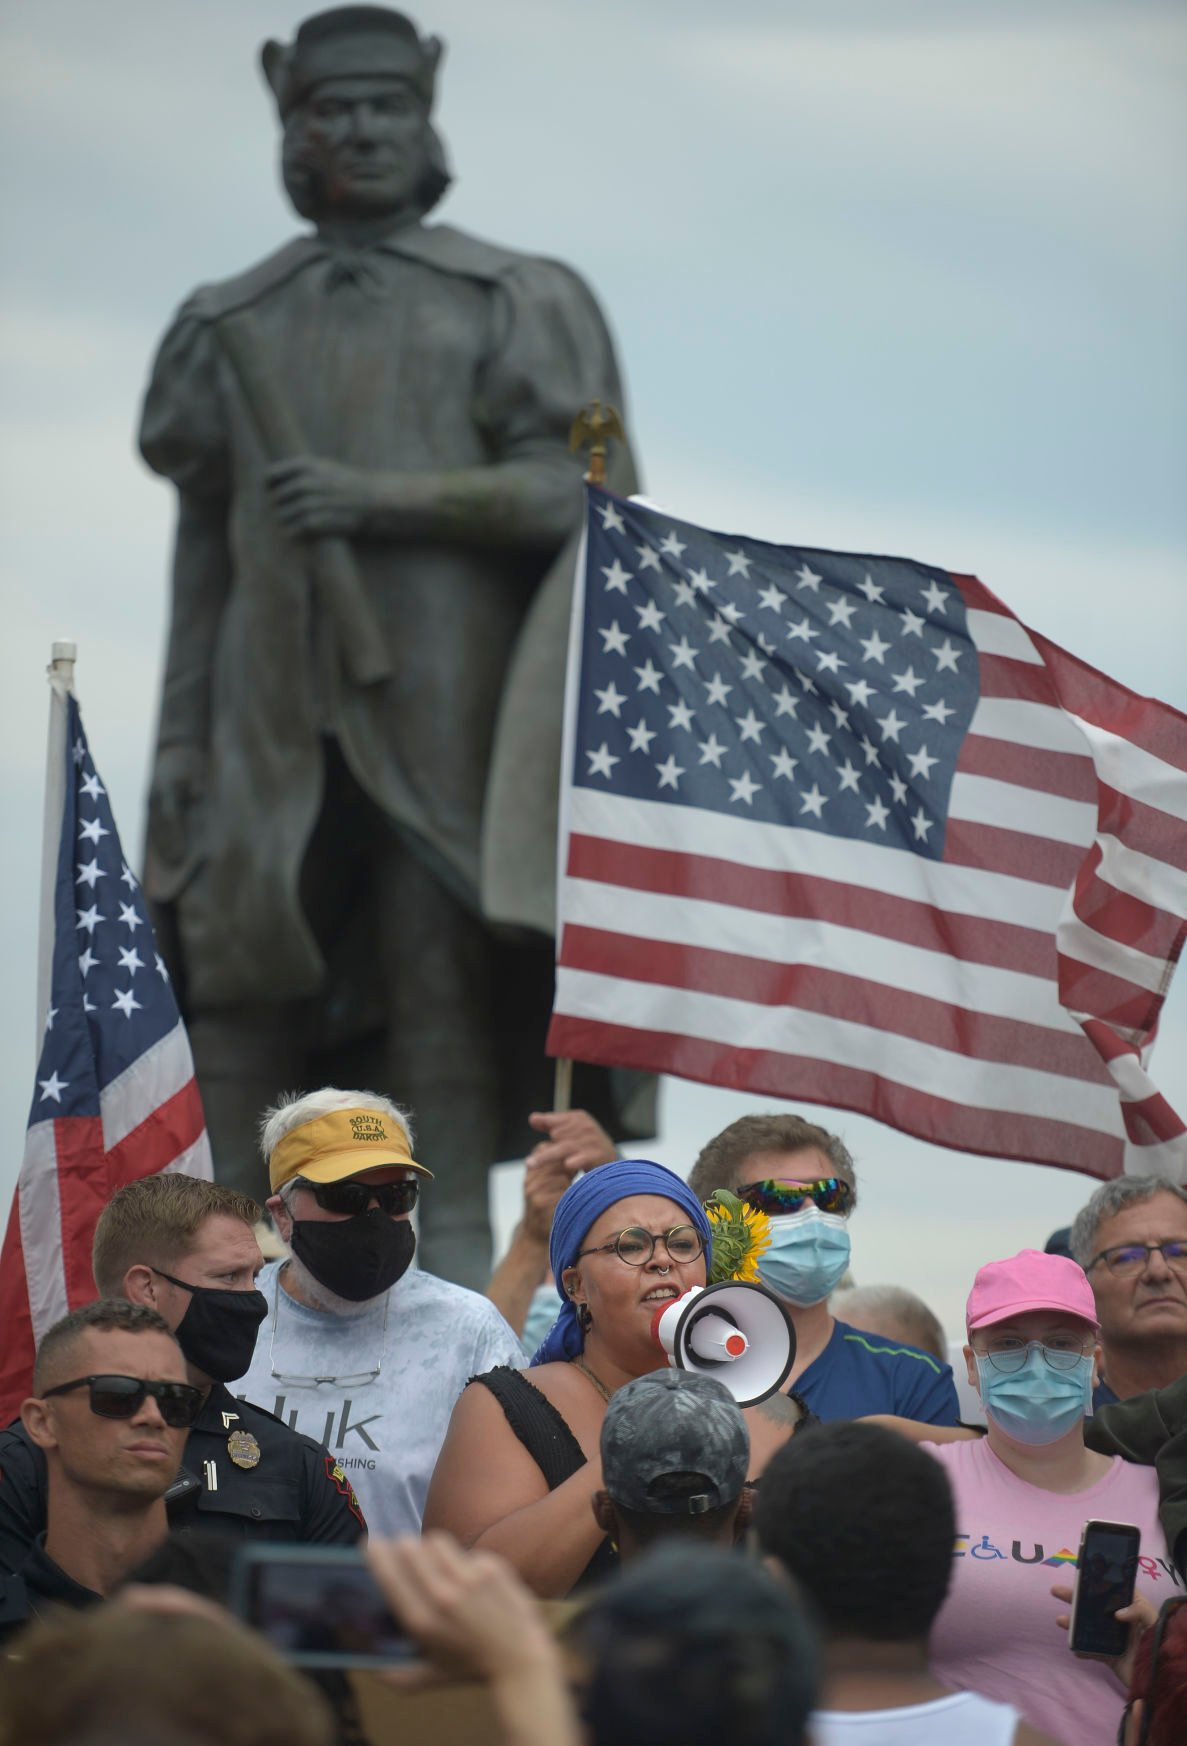 CHRISTOPHER COLUMBUS PROTEST